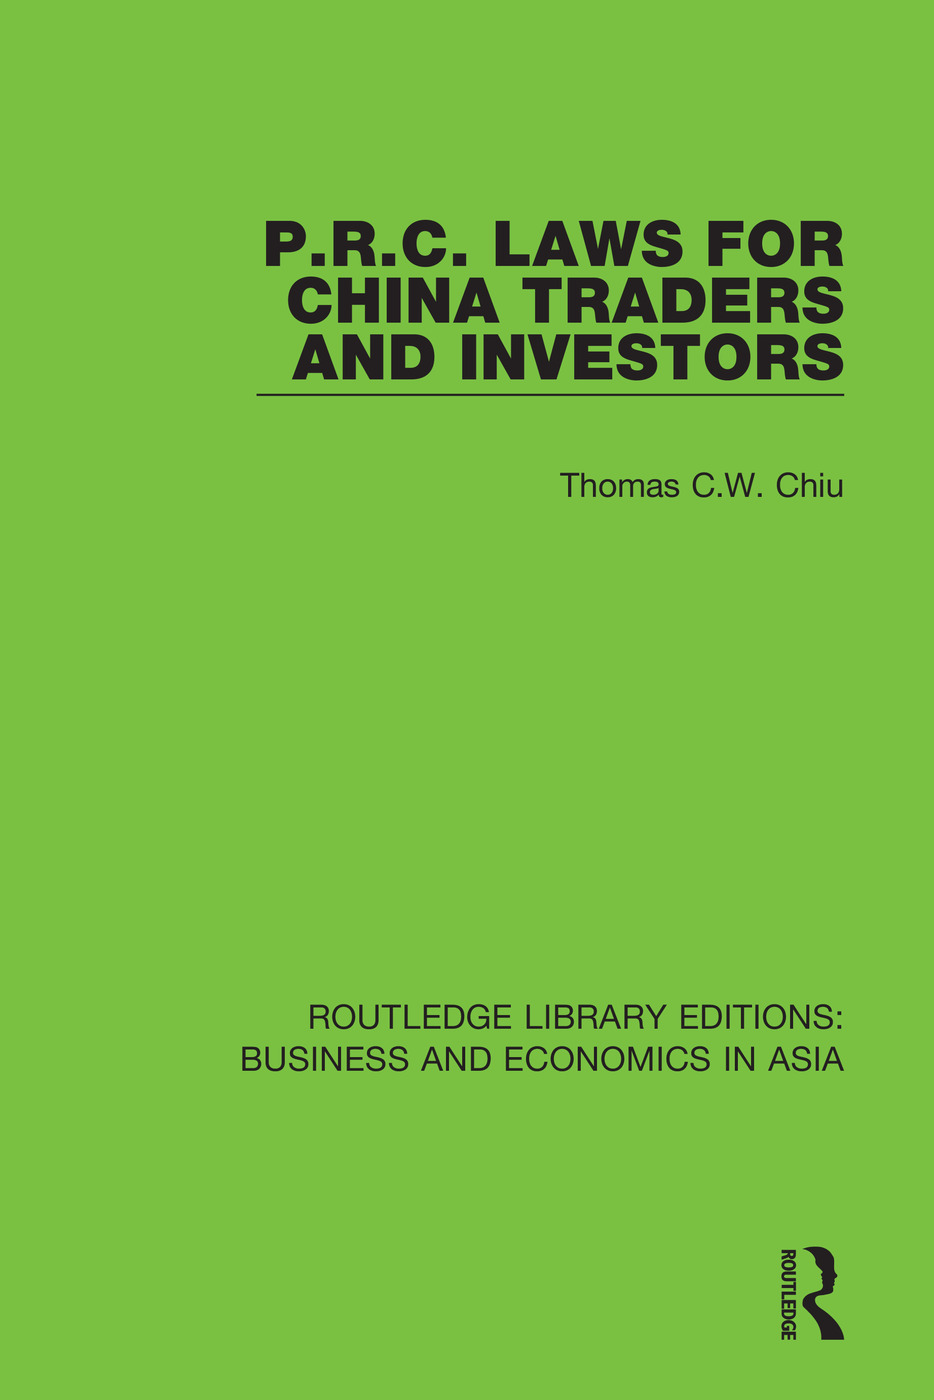 P.R.C. Laws for China Traders and Investors: Second Edition, Revised book cover